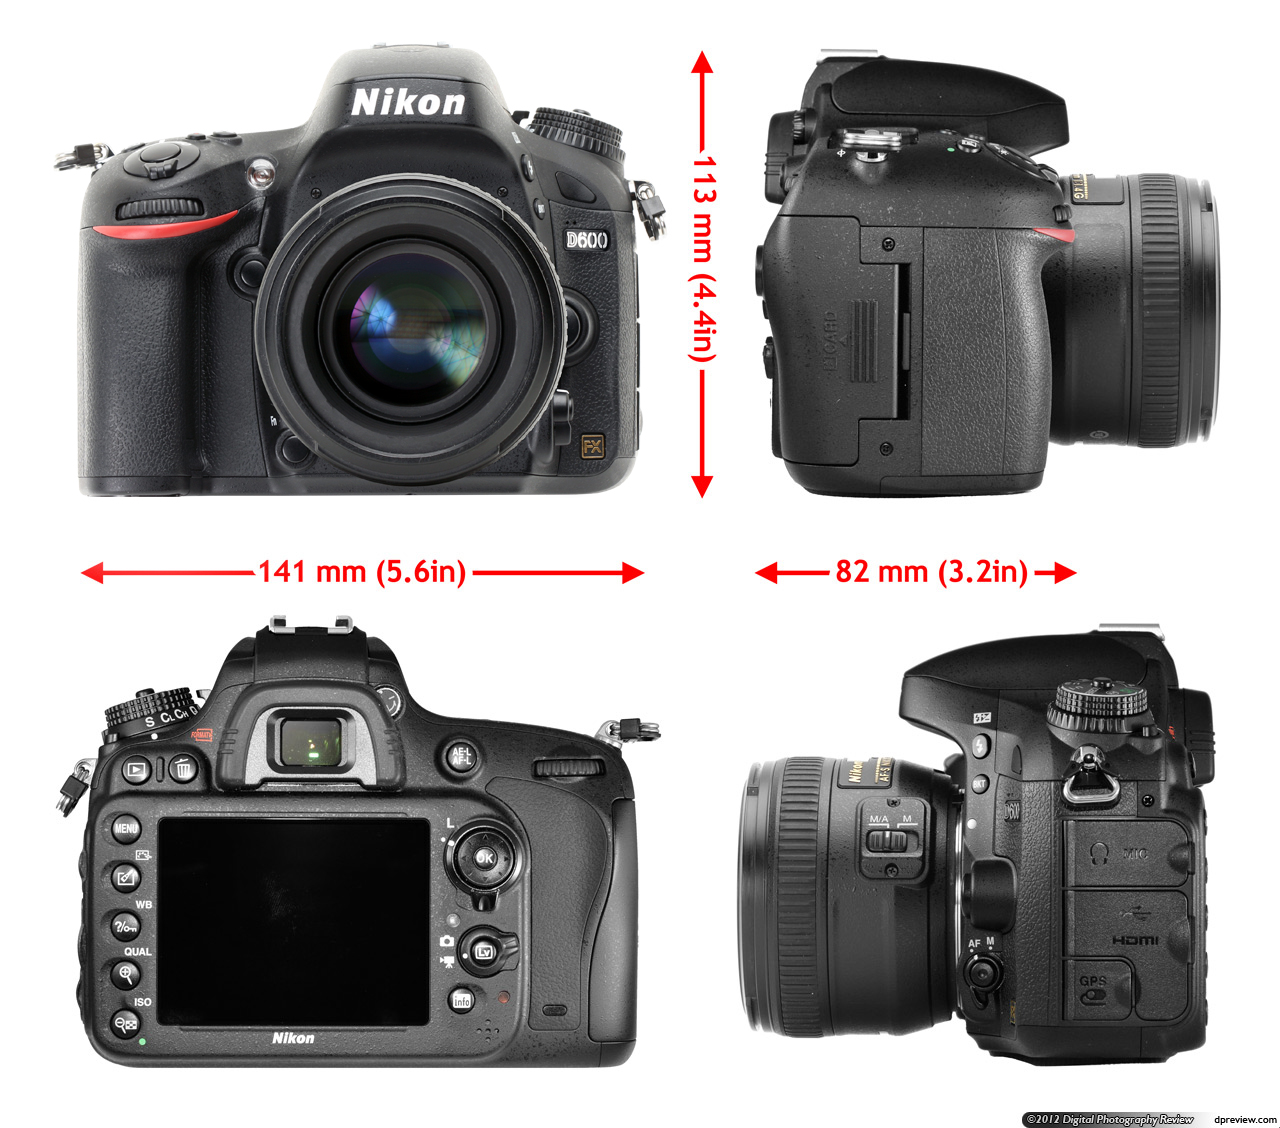 Nikon D600 In-Depth Review: Digital Photography Review